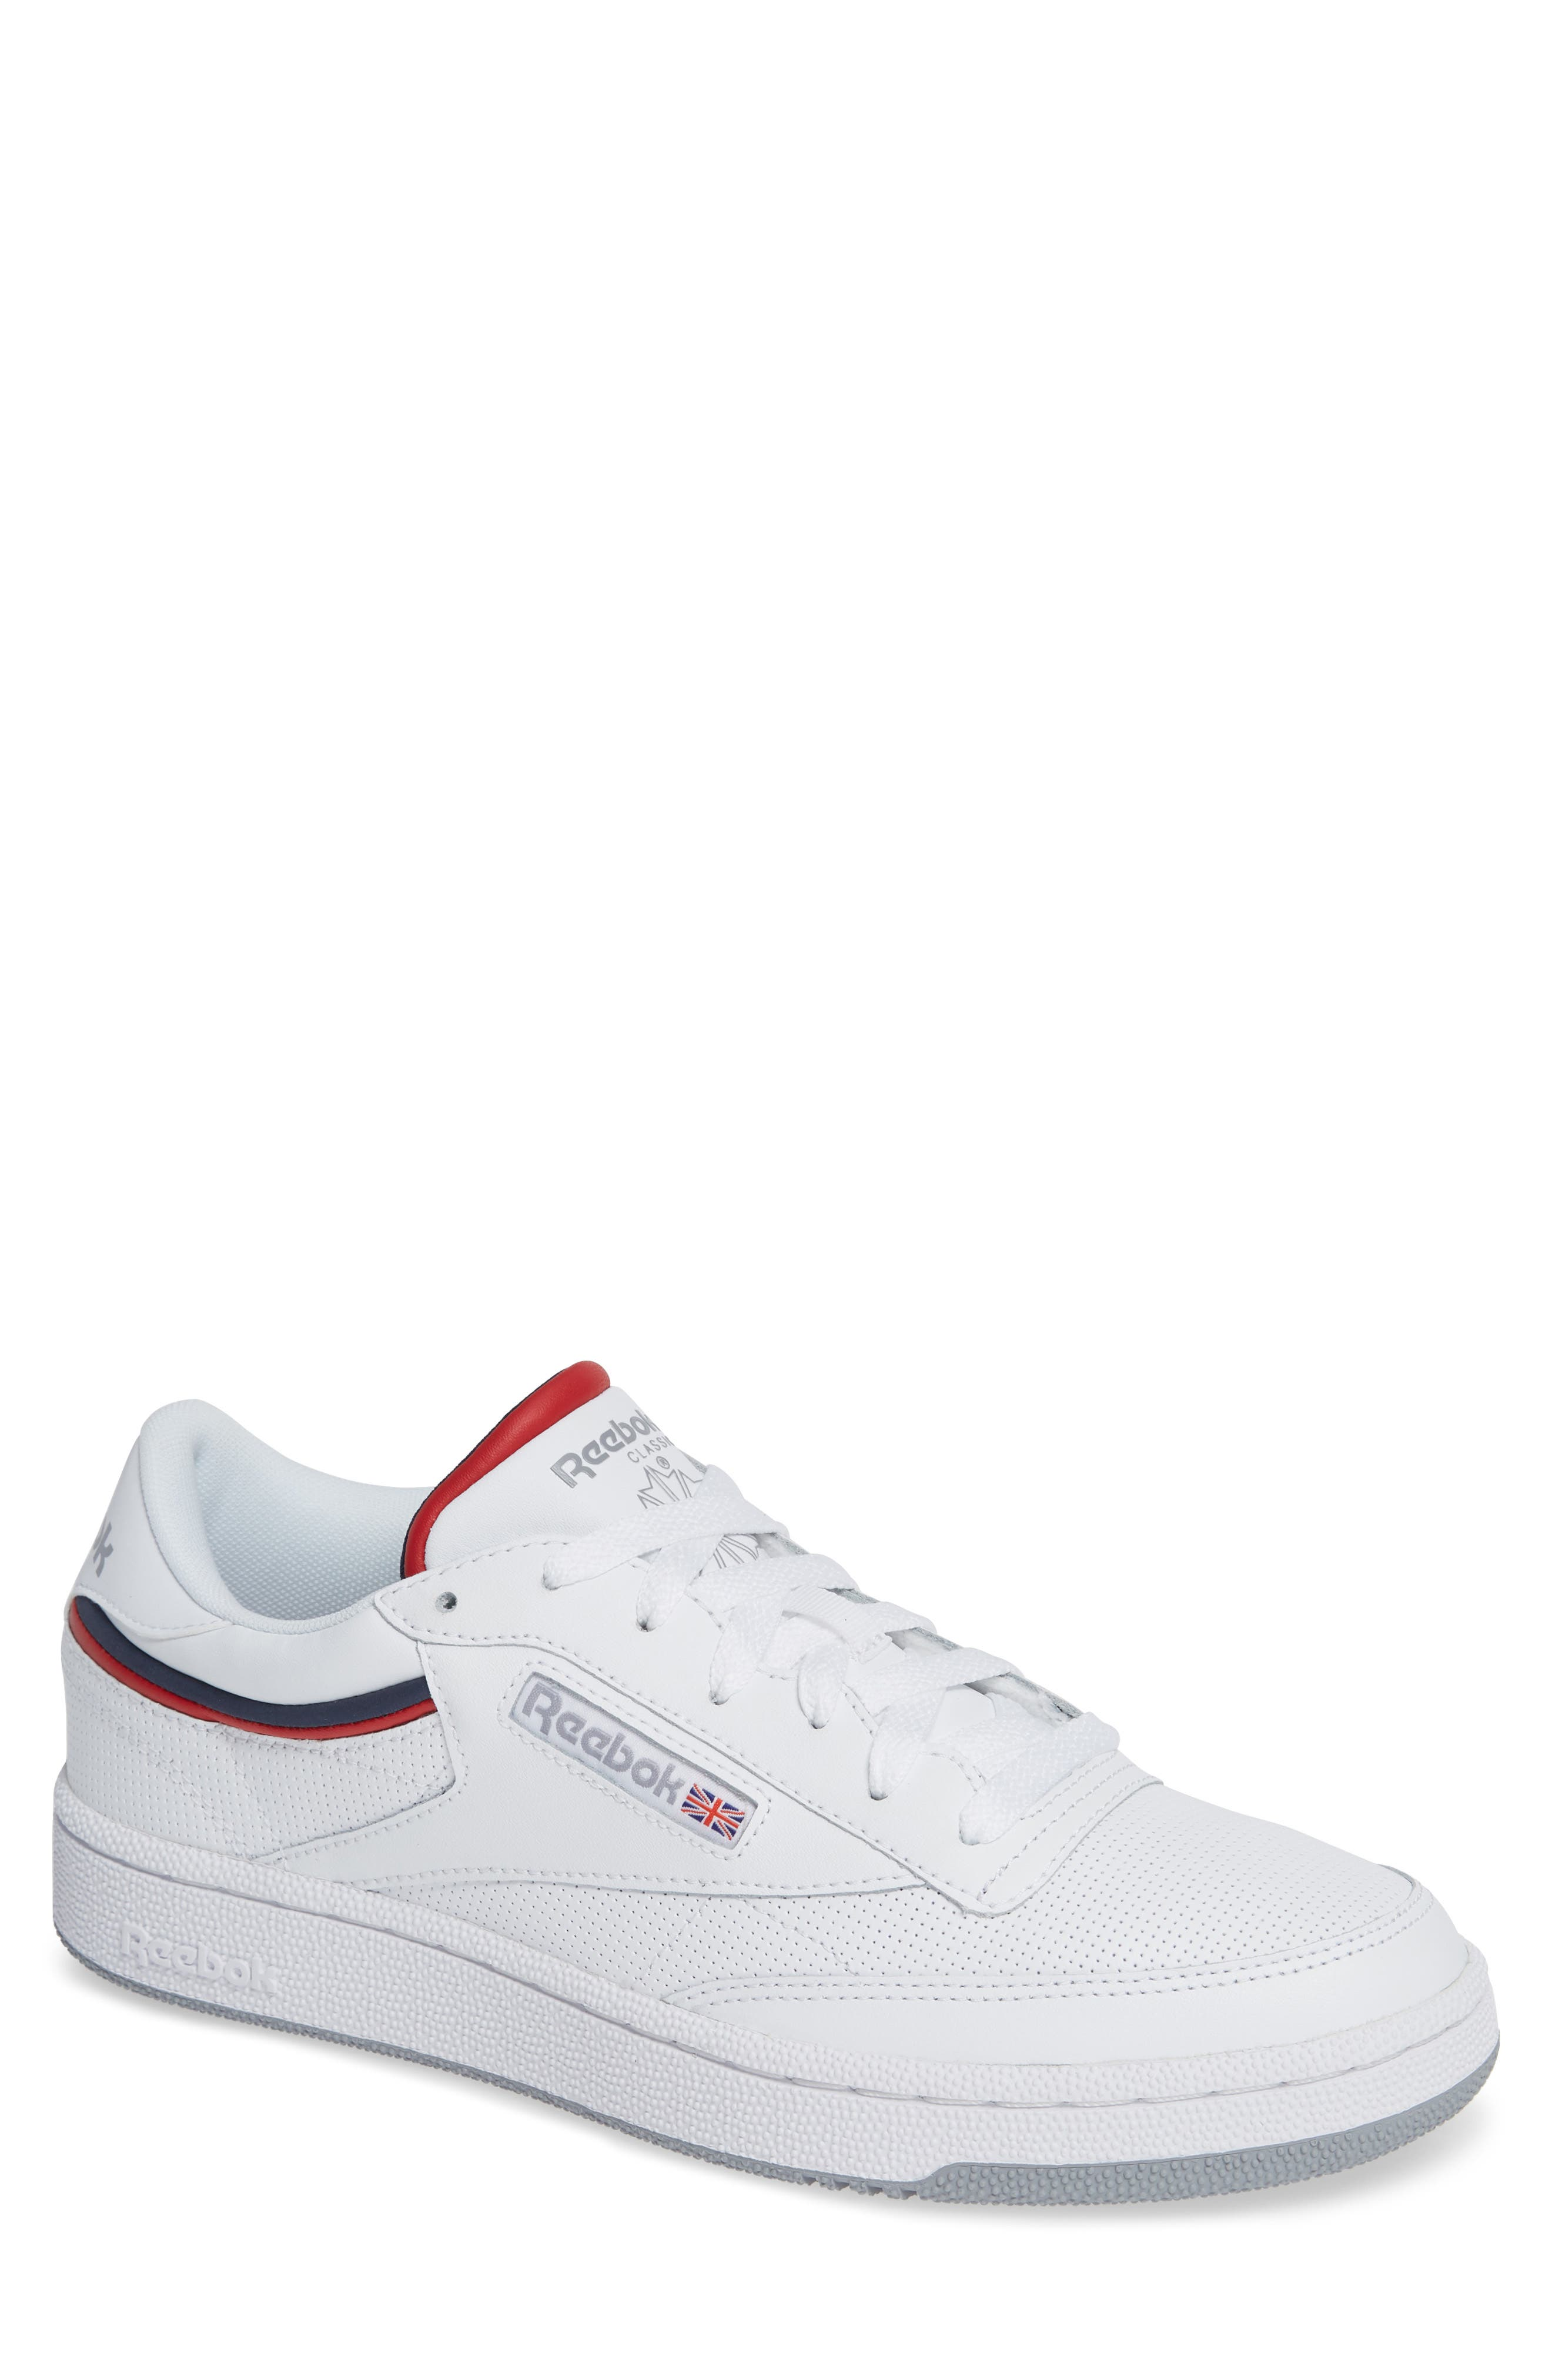 REEBOK Men'S Classic Club 85 Perforated Leather Lace-Up Sneakers in White/ Collegiate Navy/ Red